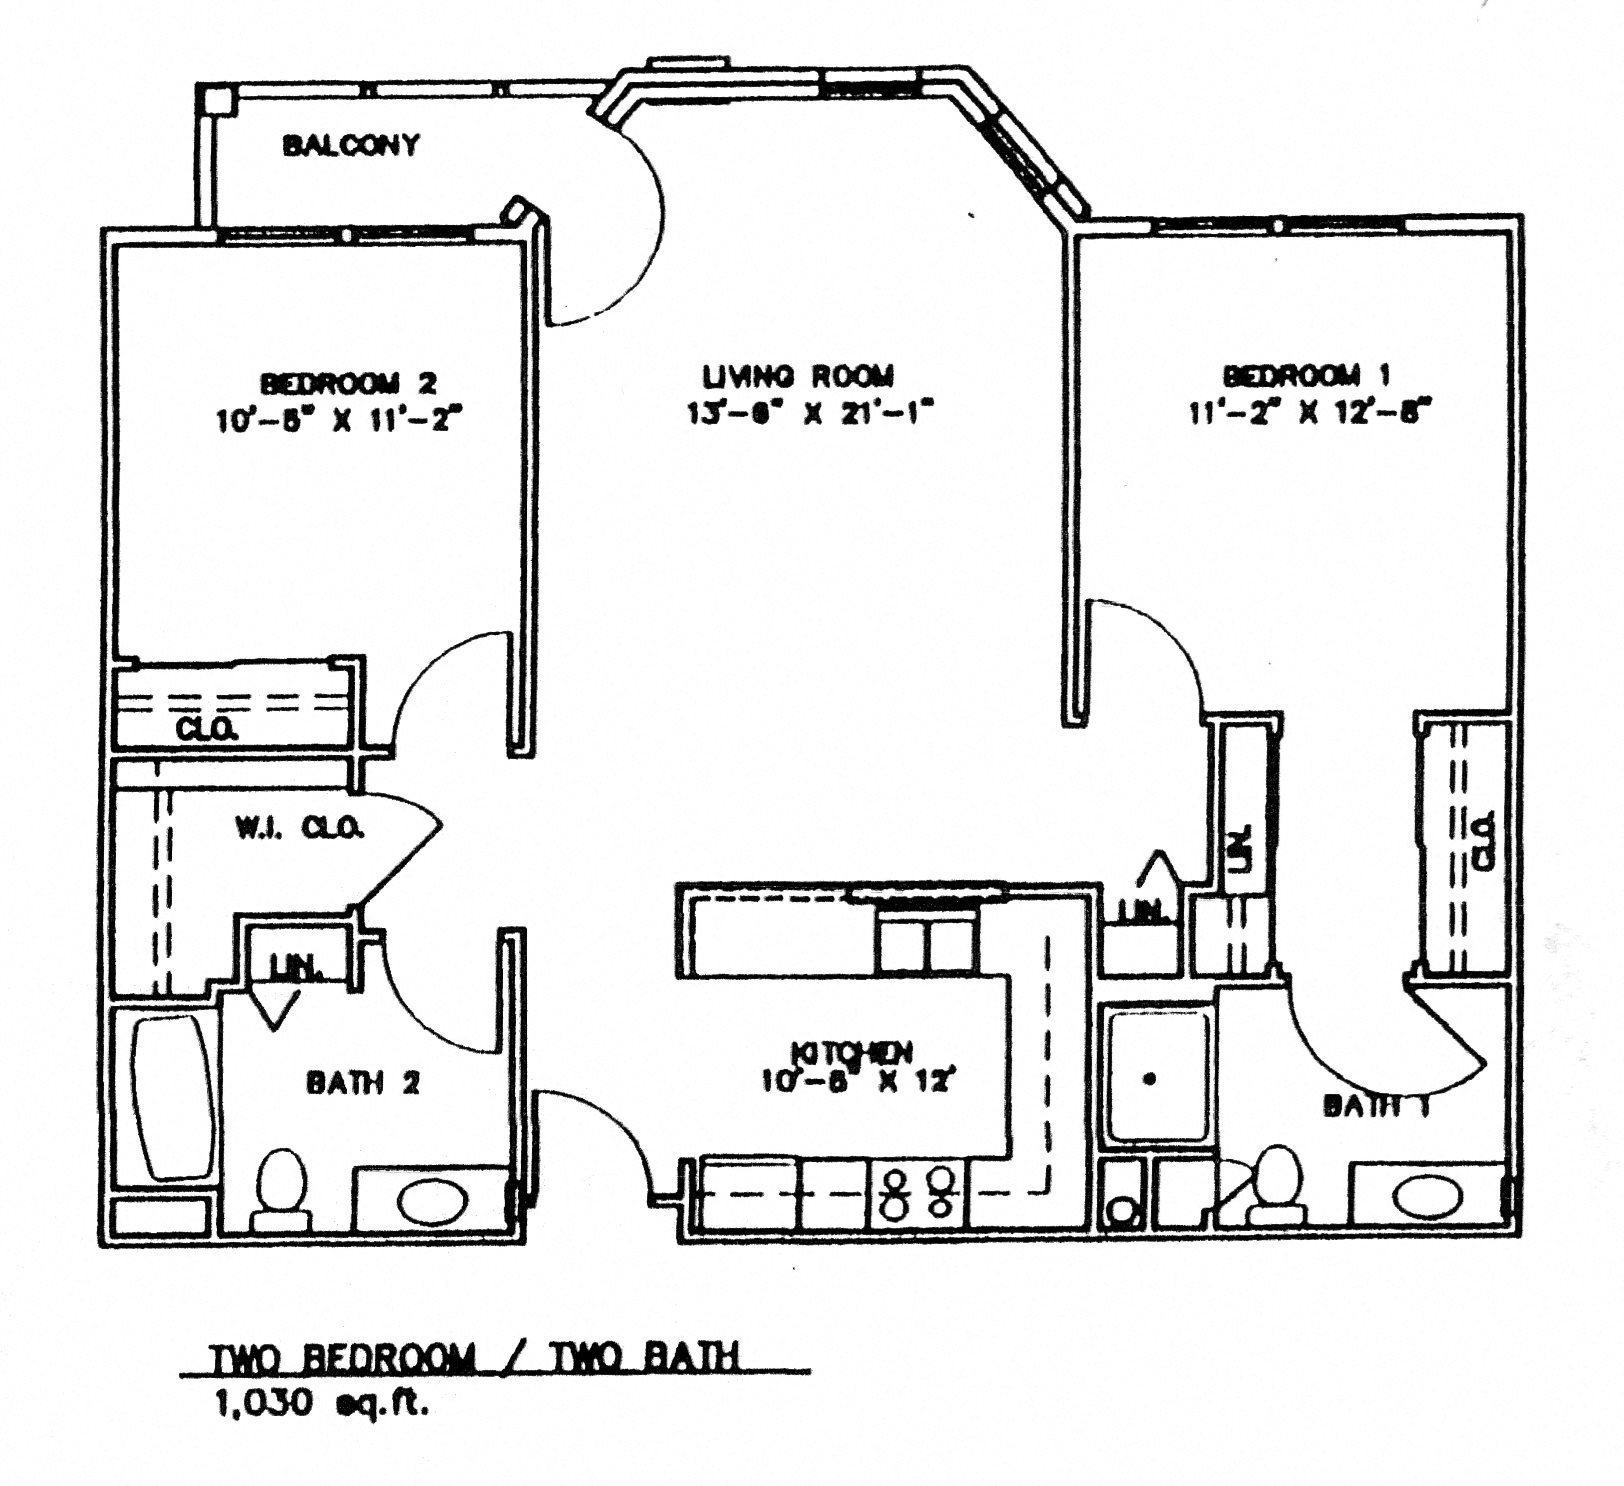 Two Bedroom w/Patio (Income Limits Per Household: 1 person -  $30,840/ 2 person $35,220) Floor Plan 4